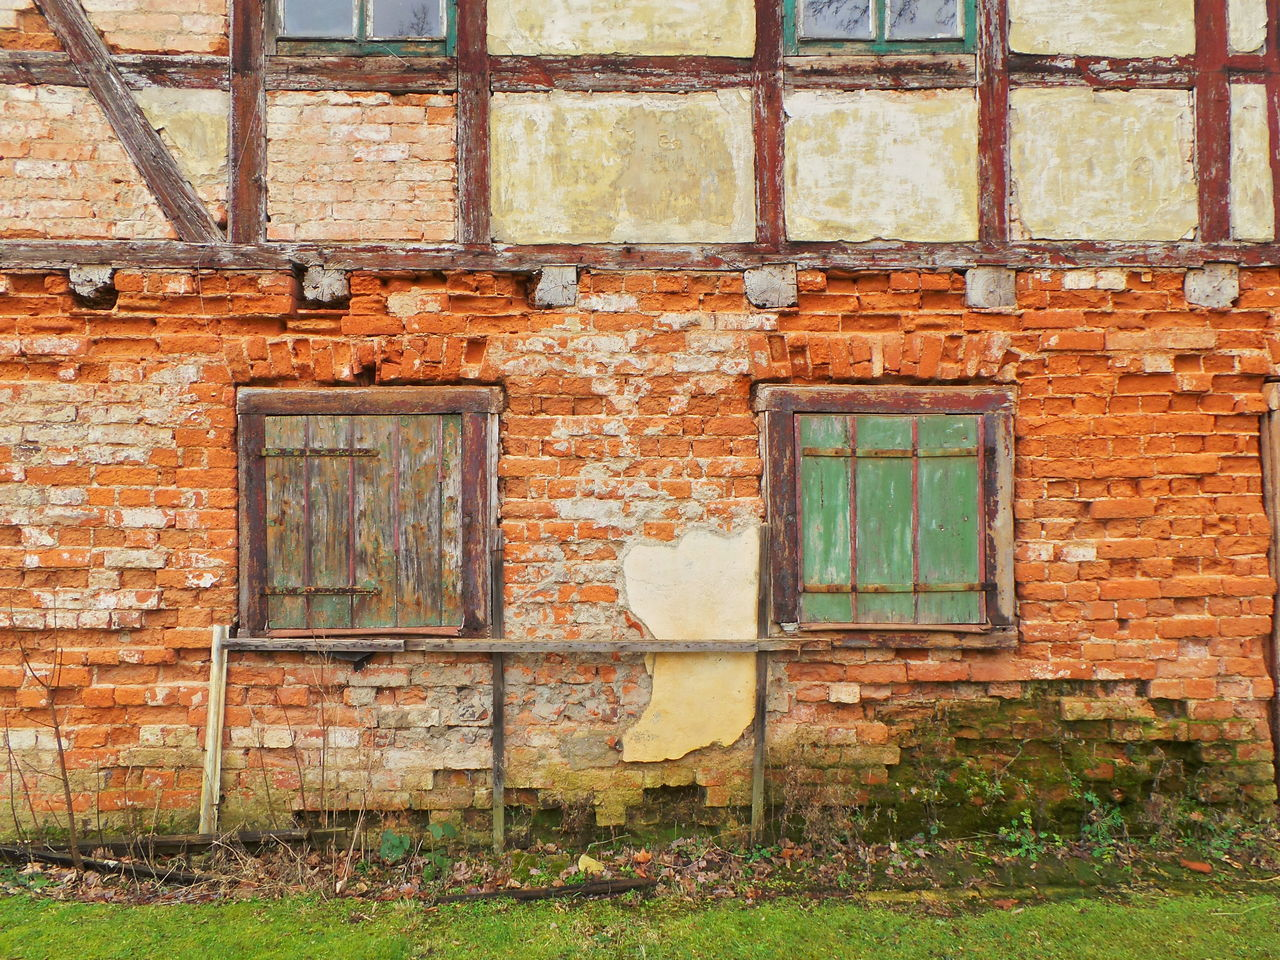 architecture, window, built structure, brick wall, building exterior, wall - building feature, house, damaged, weathered, day, outdoors, facade, obsolete, no people, red, peeling off, full frame